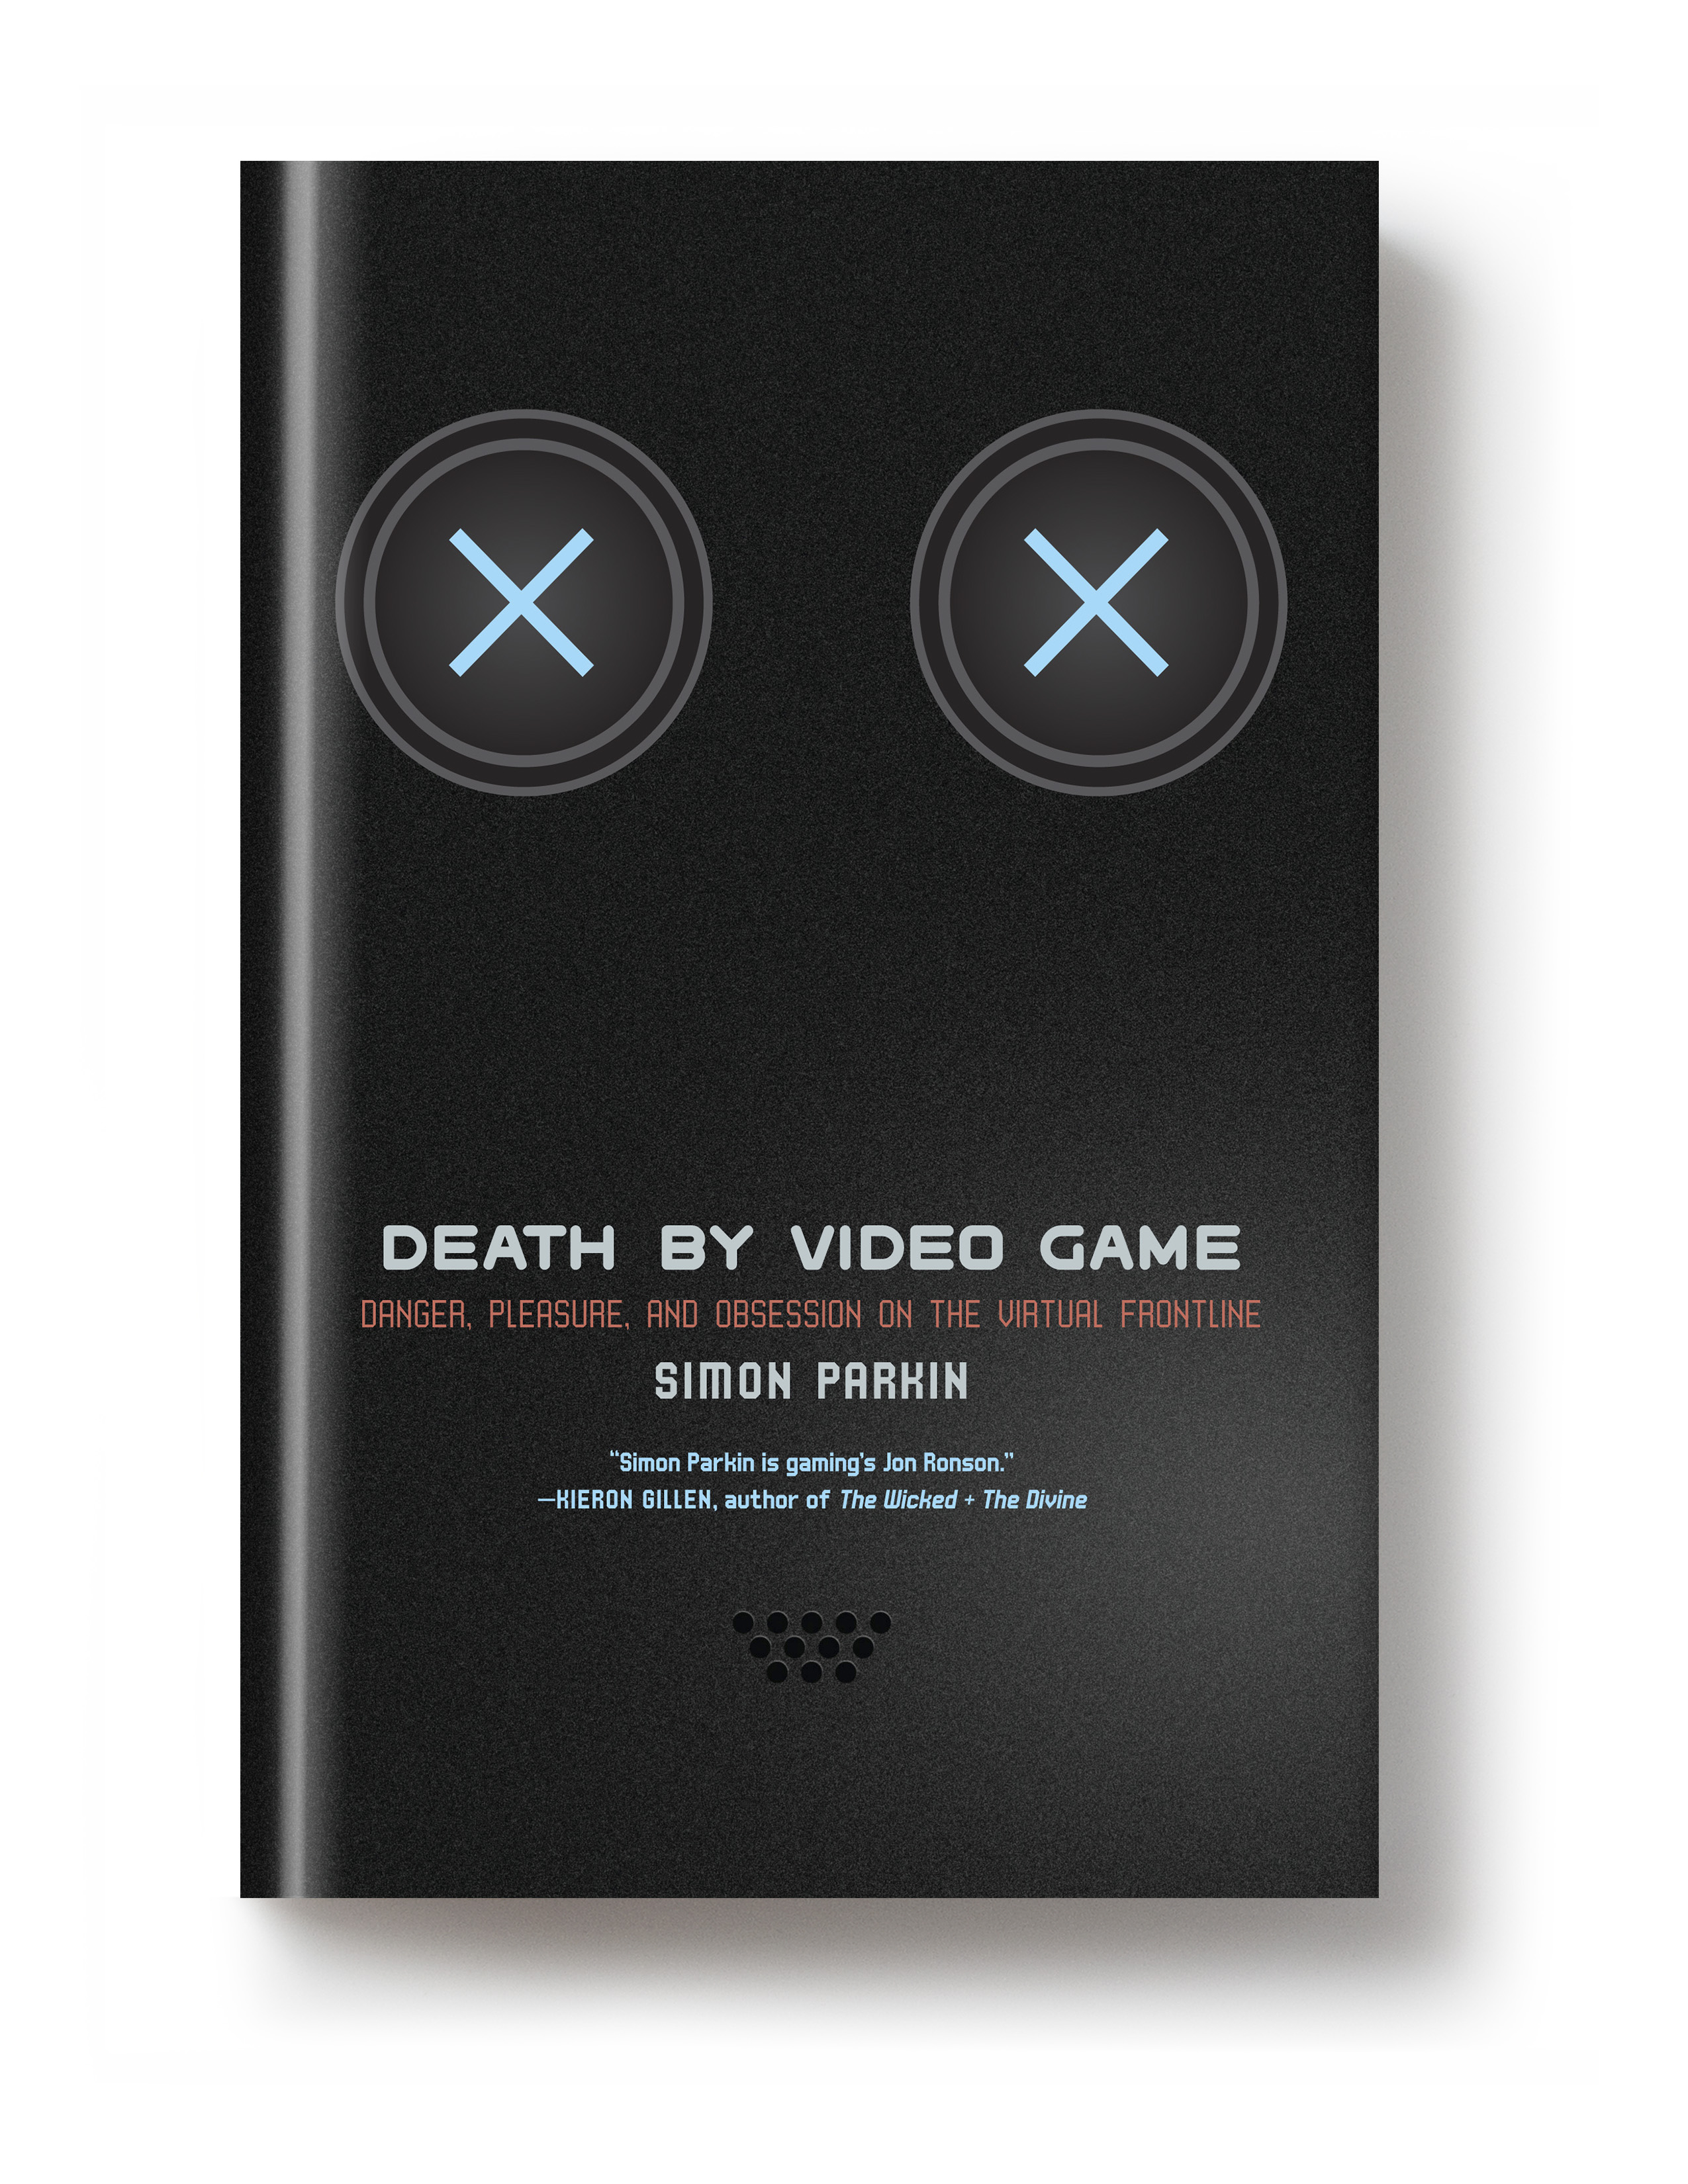 Death by video game: The addiction thunderdome